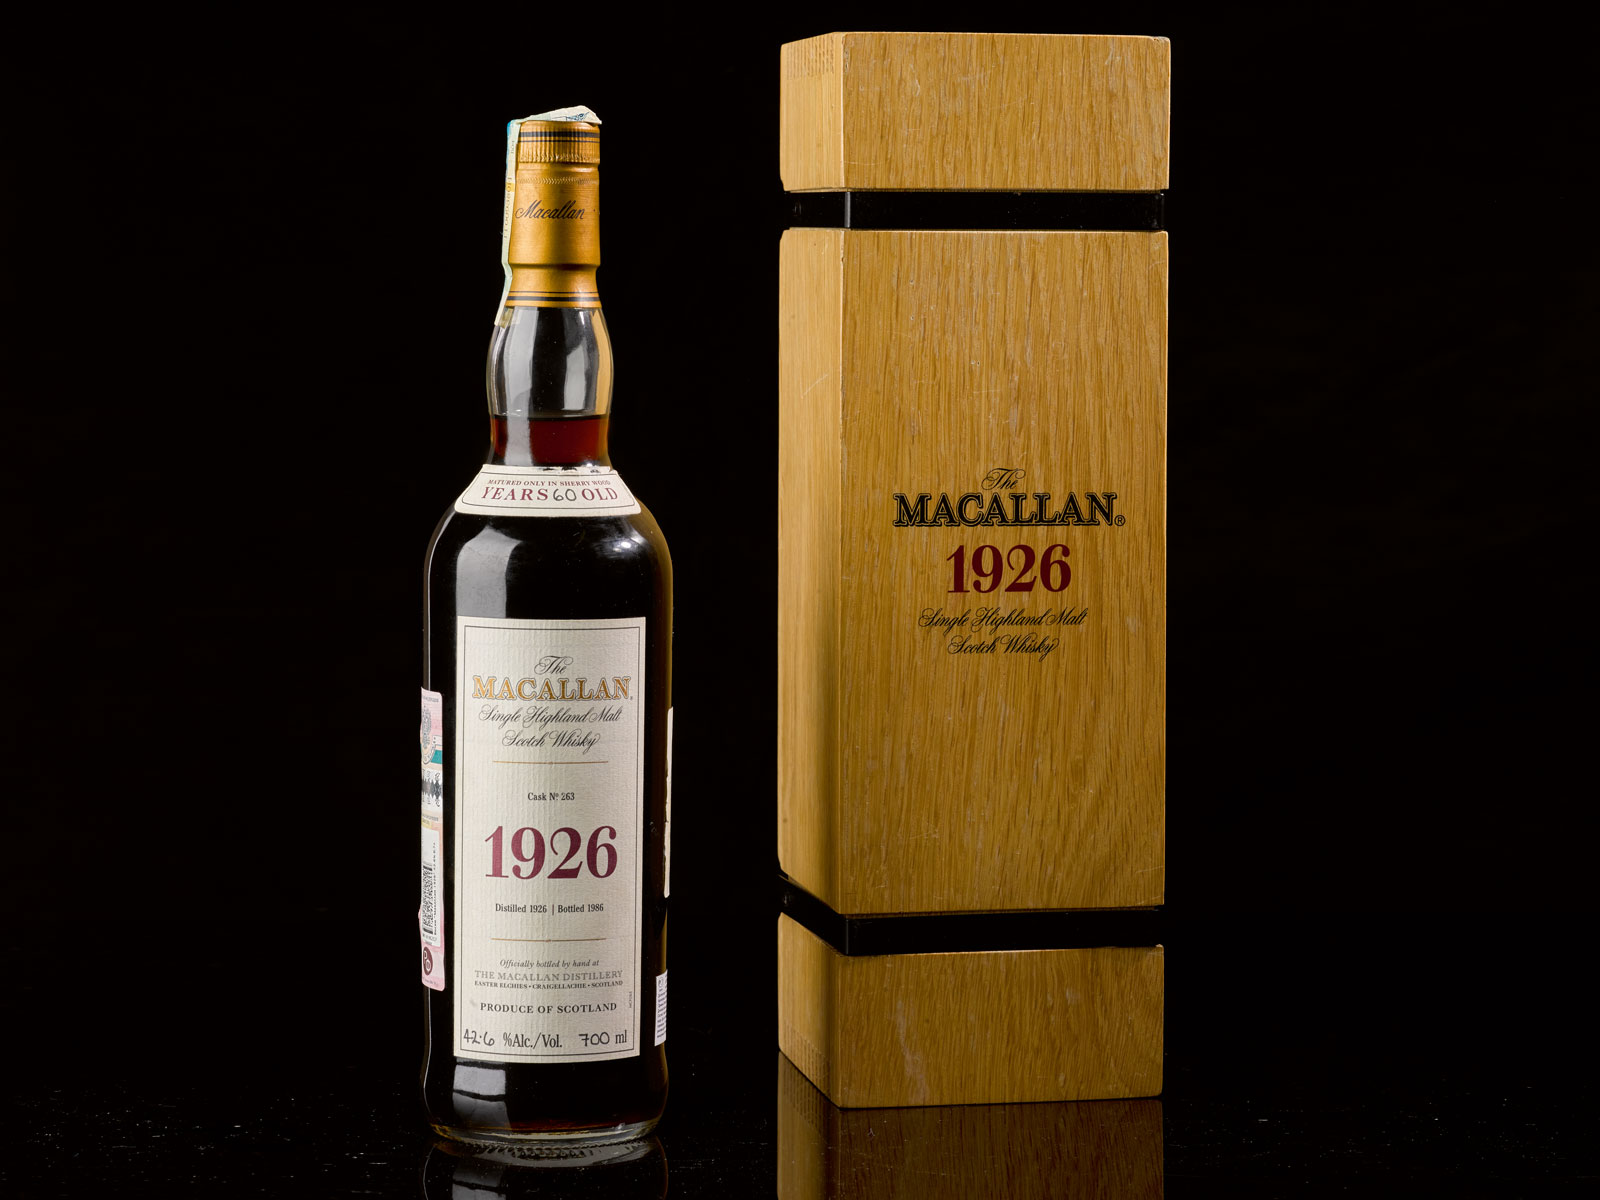 macallan-sothebys-record-FT-BLOG1019.jpg